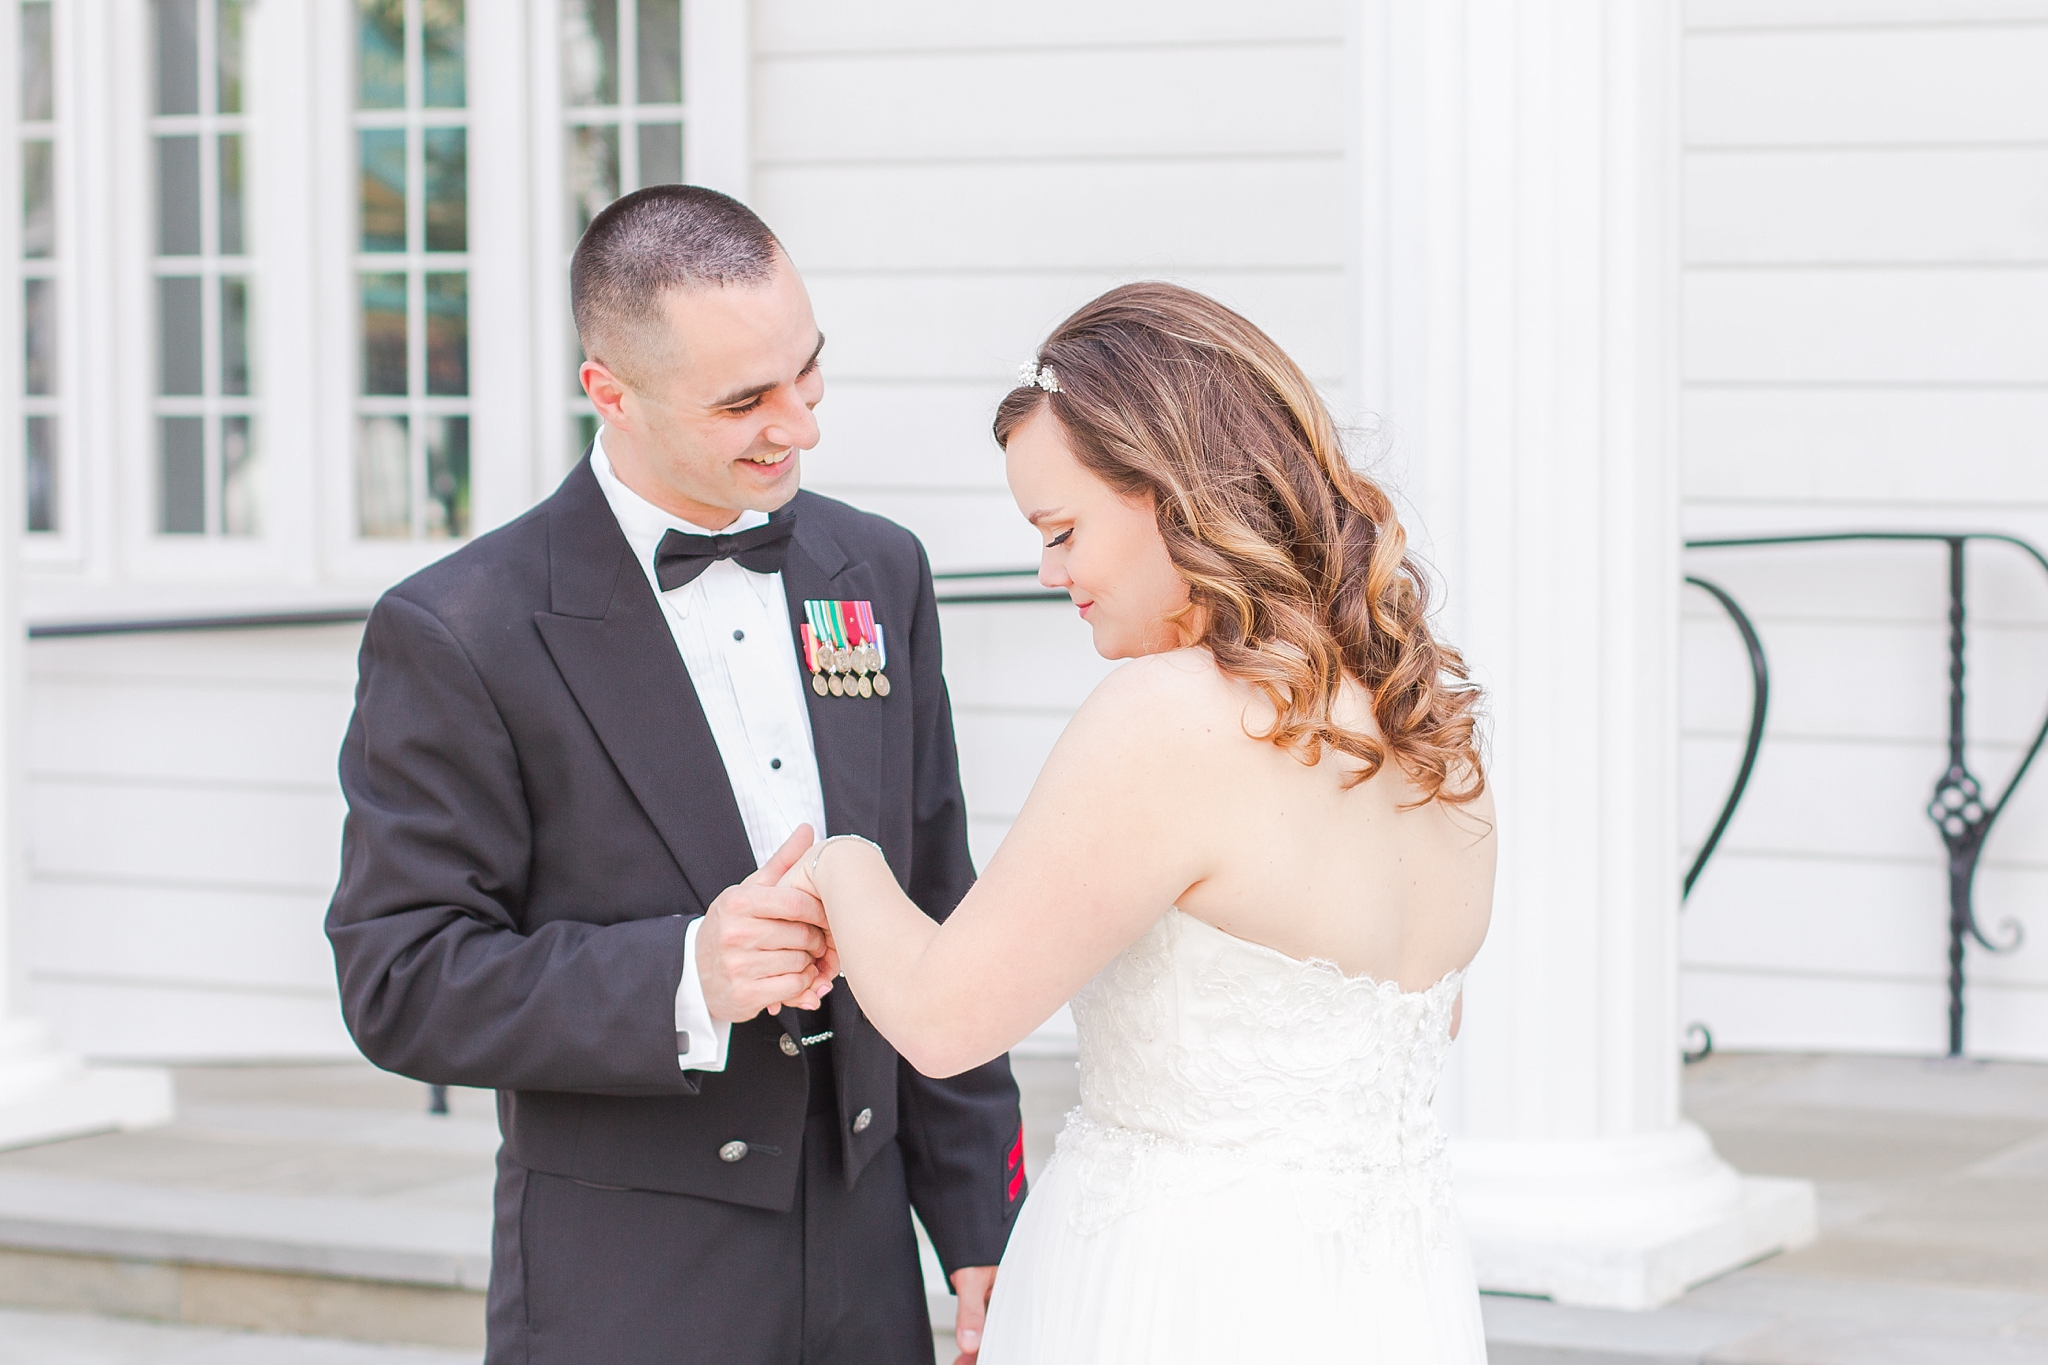 romantic-artful-candid-wedding-photos-in-st-clair-shores-at-the-white-house-wedding-chapel-by-courtney-carolyn-photography_0021.jpg